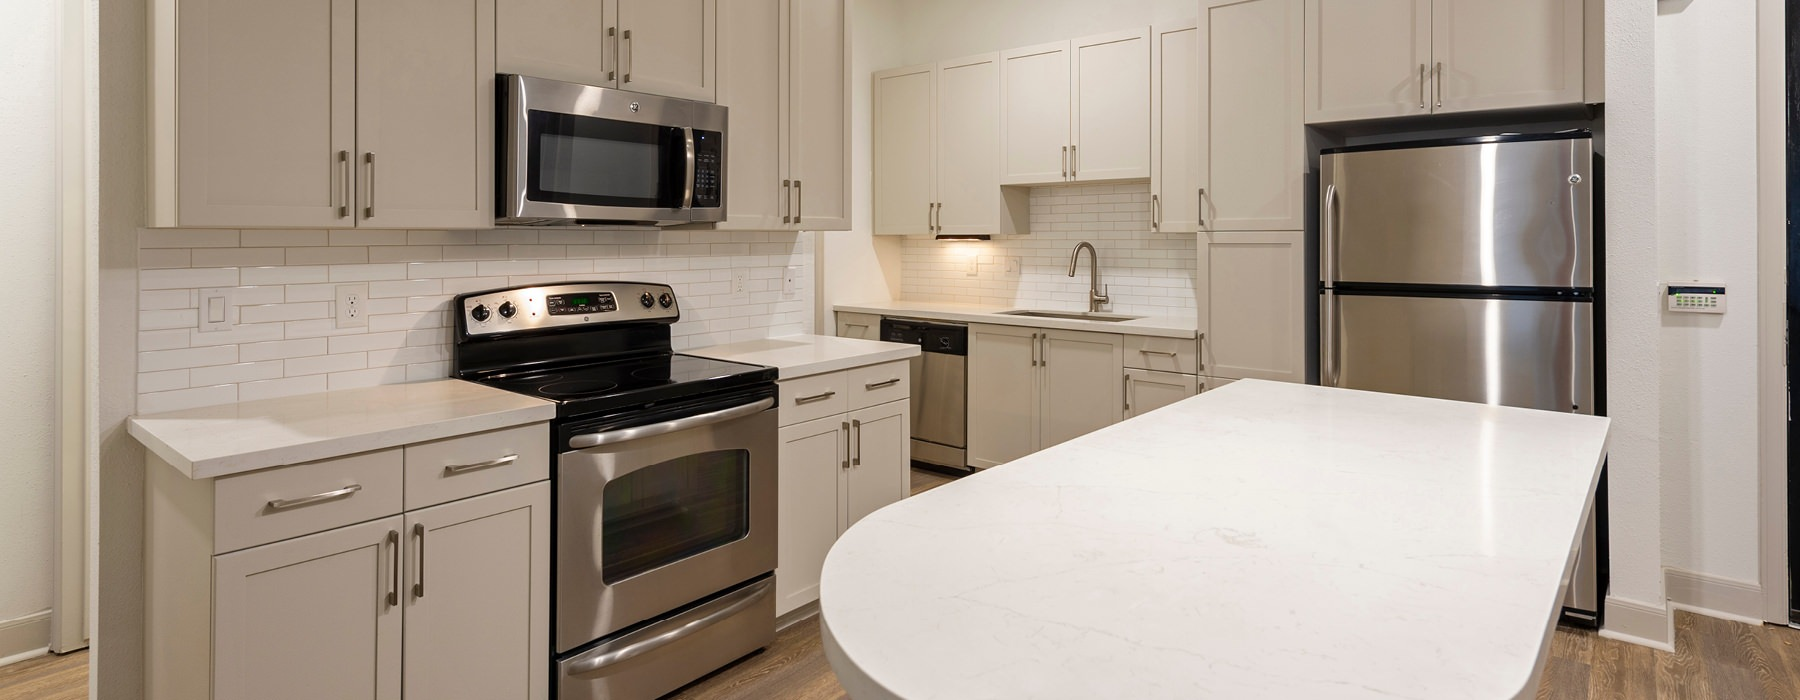 well lit open kitchen with island countertop